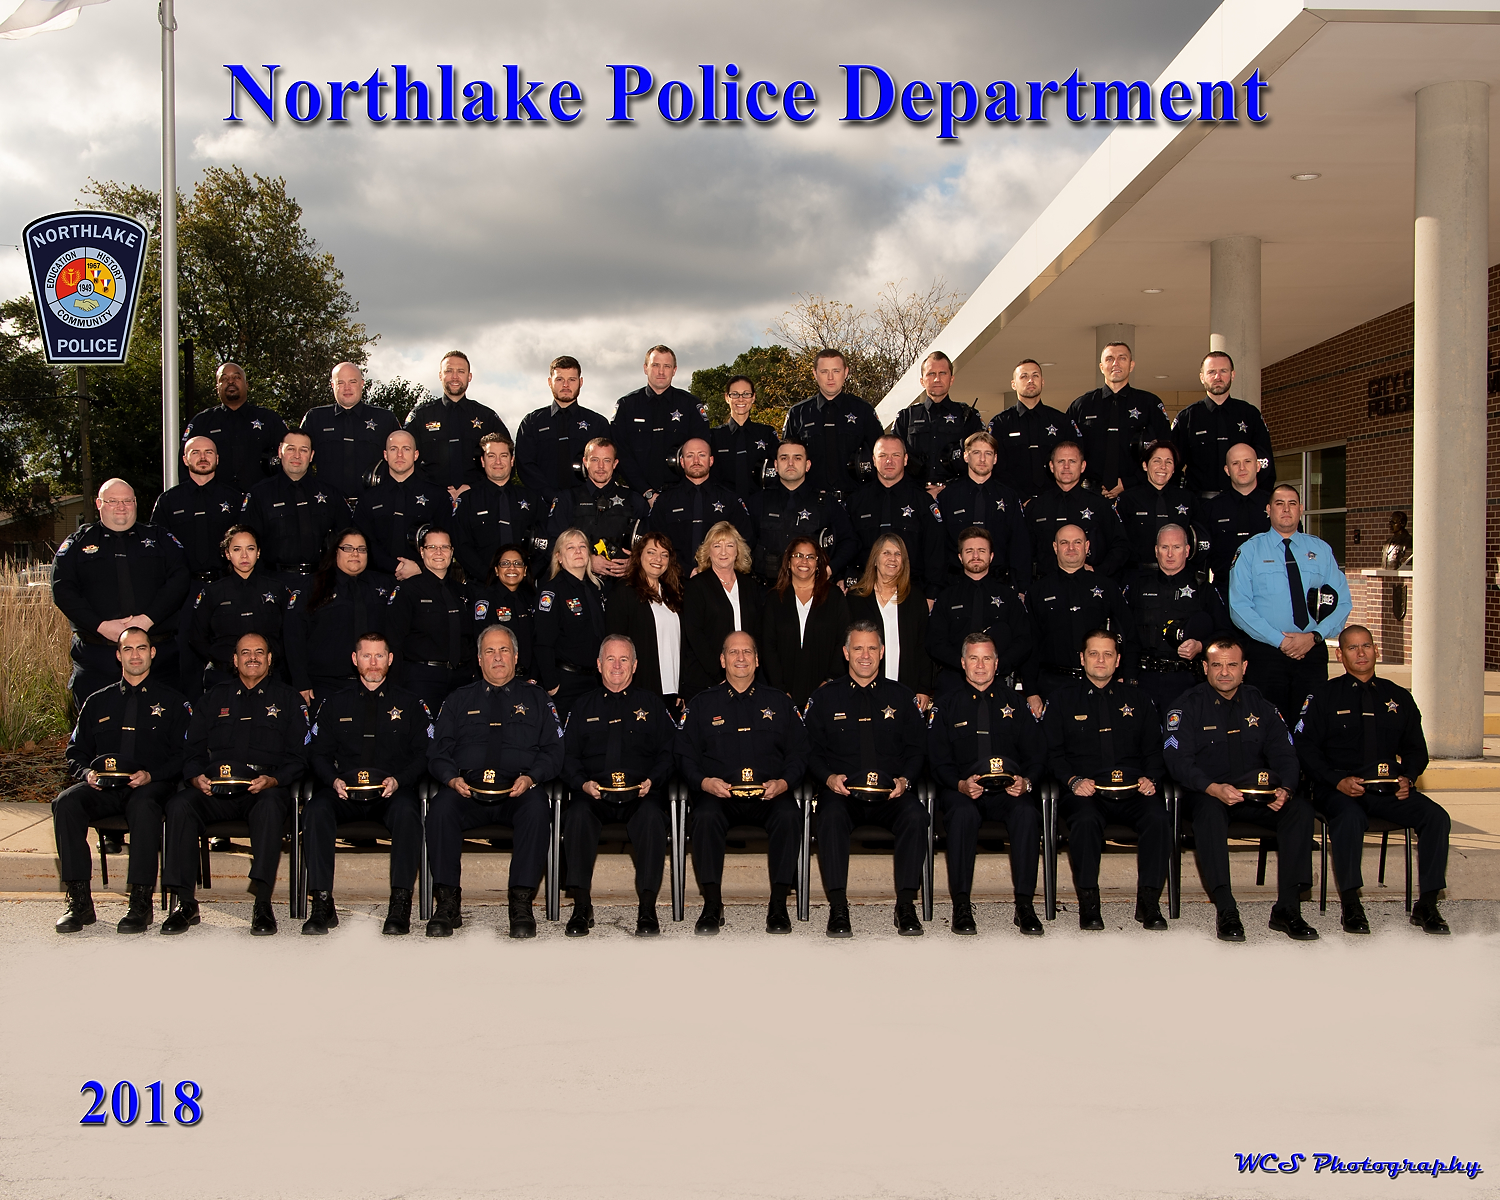 Police - Northlake, IL